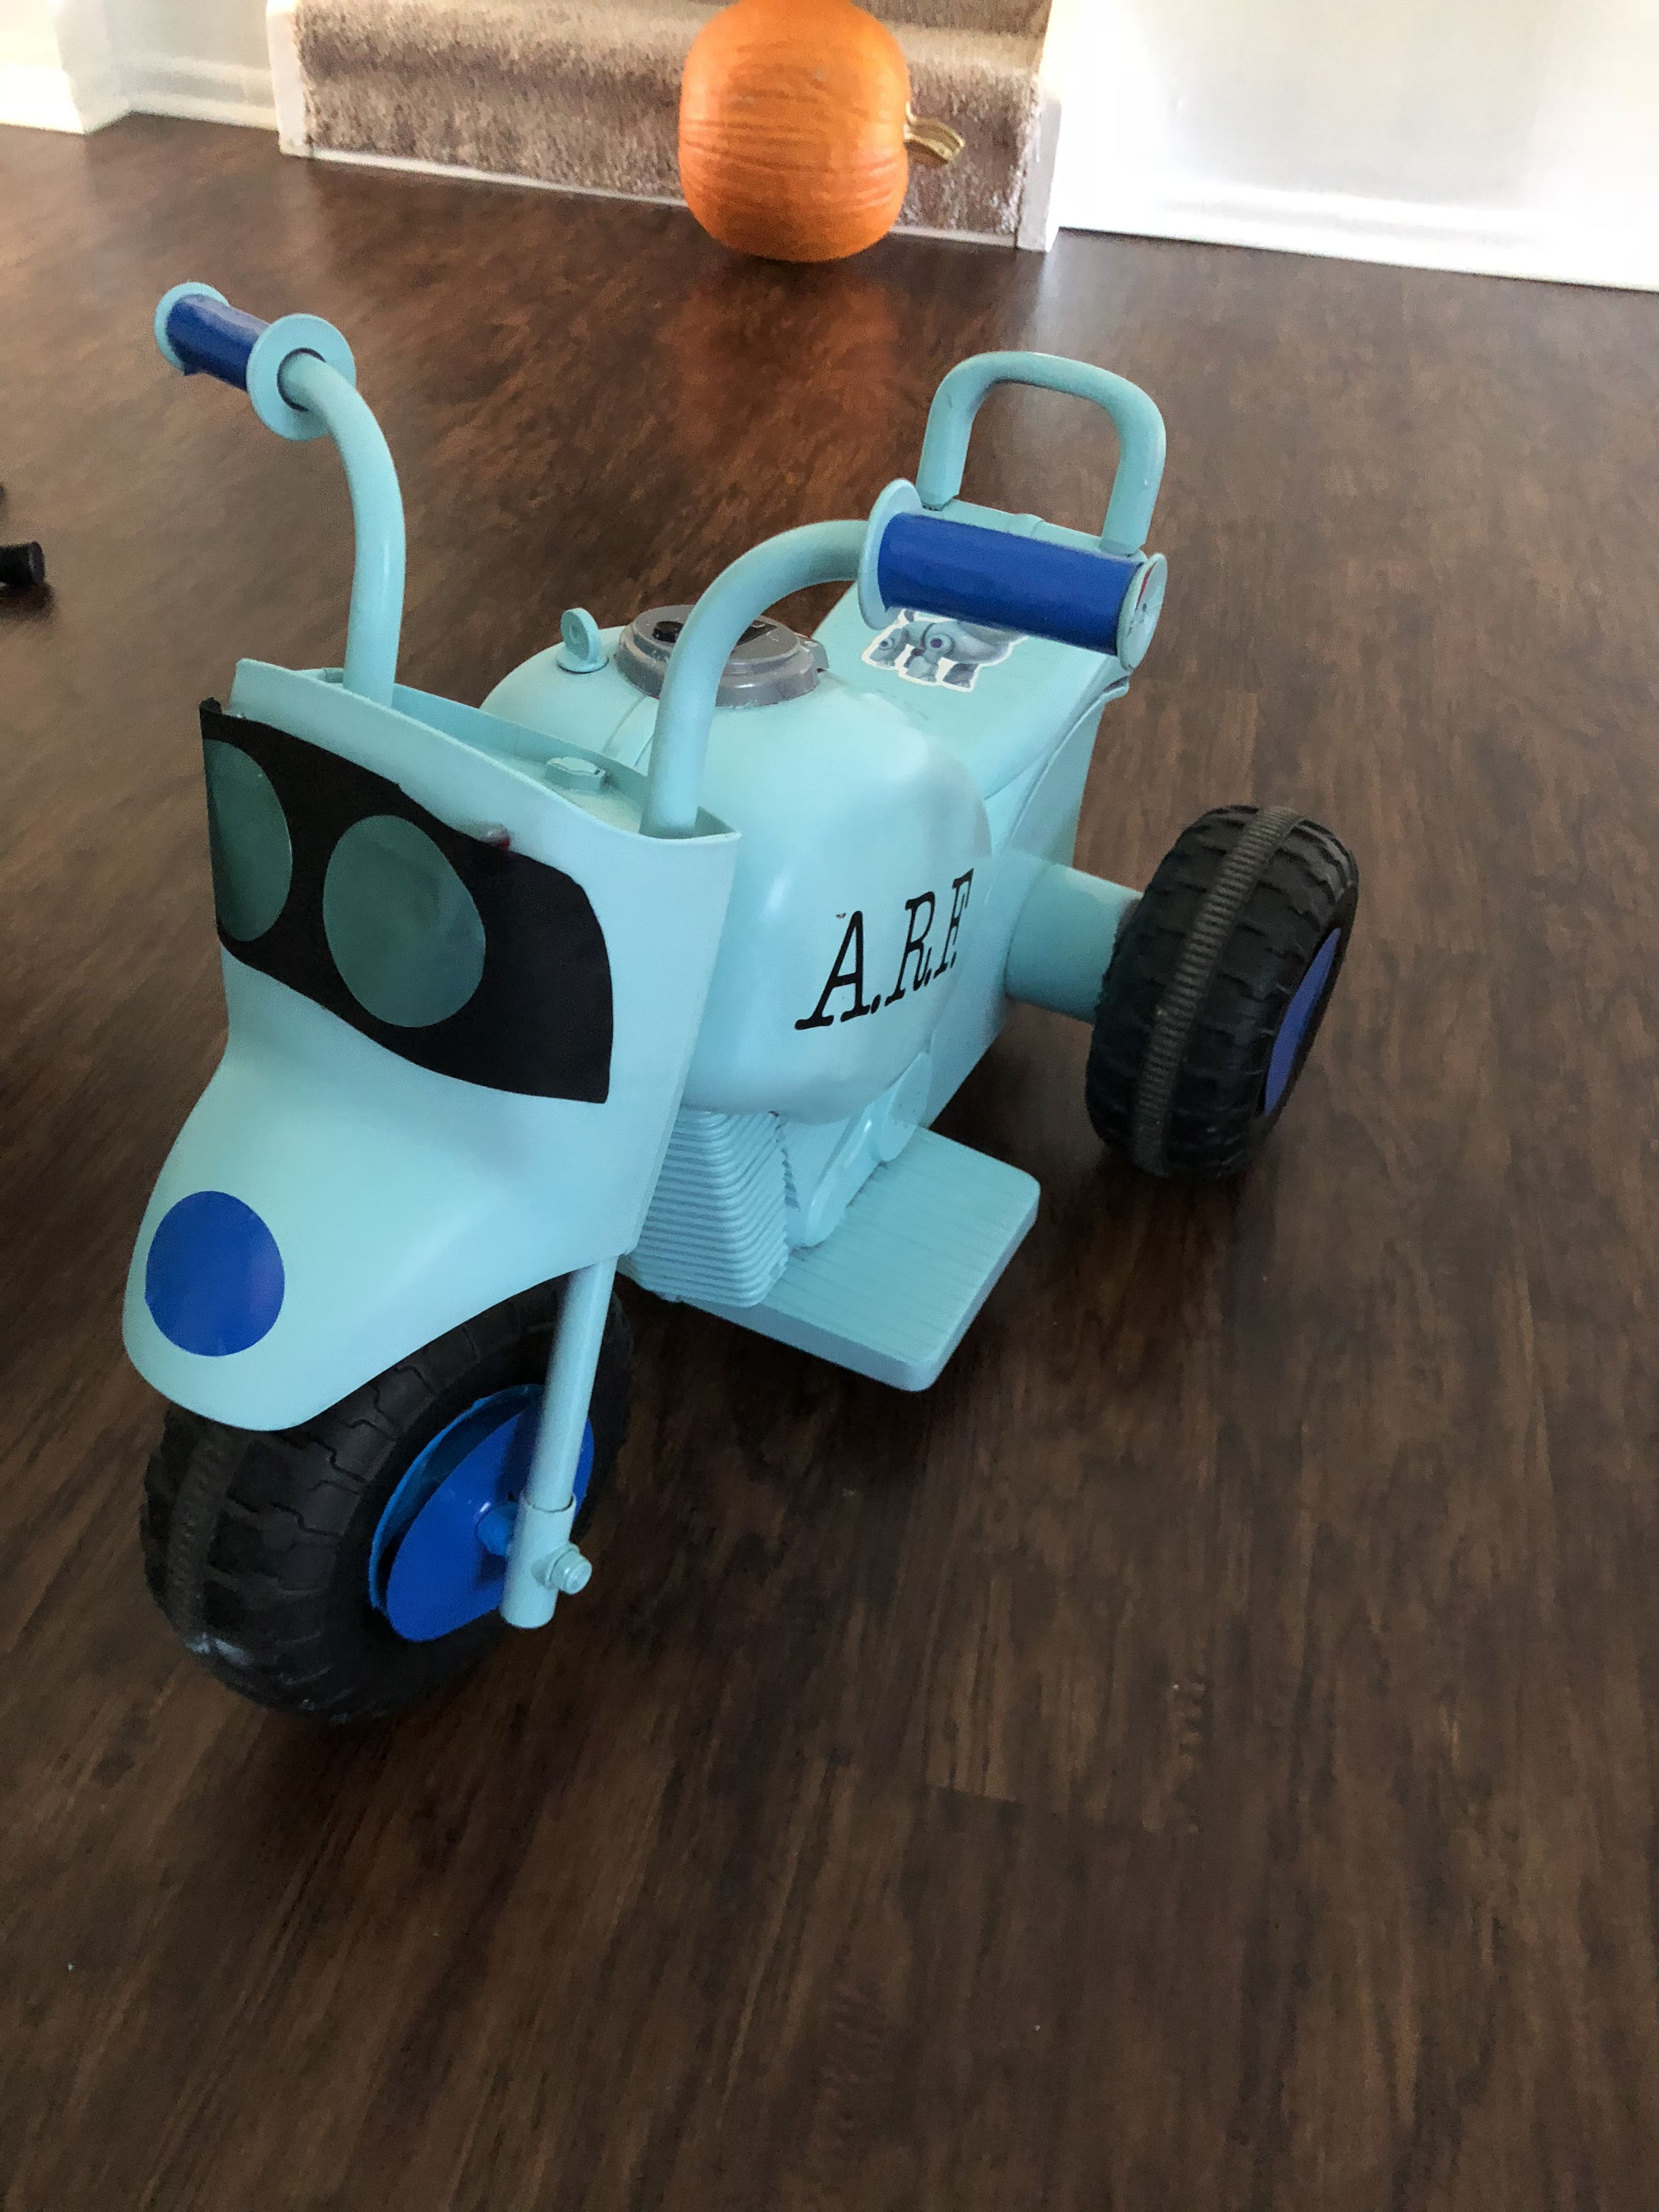 Puppy Dog Pals Arf Motorized Car Dogs And Puppies Pals Toy Car